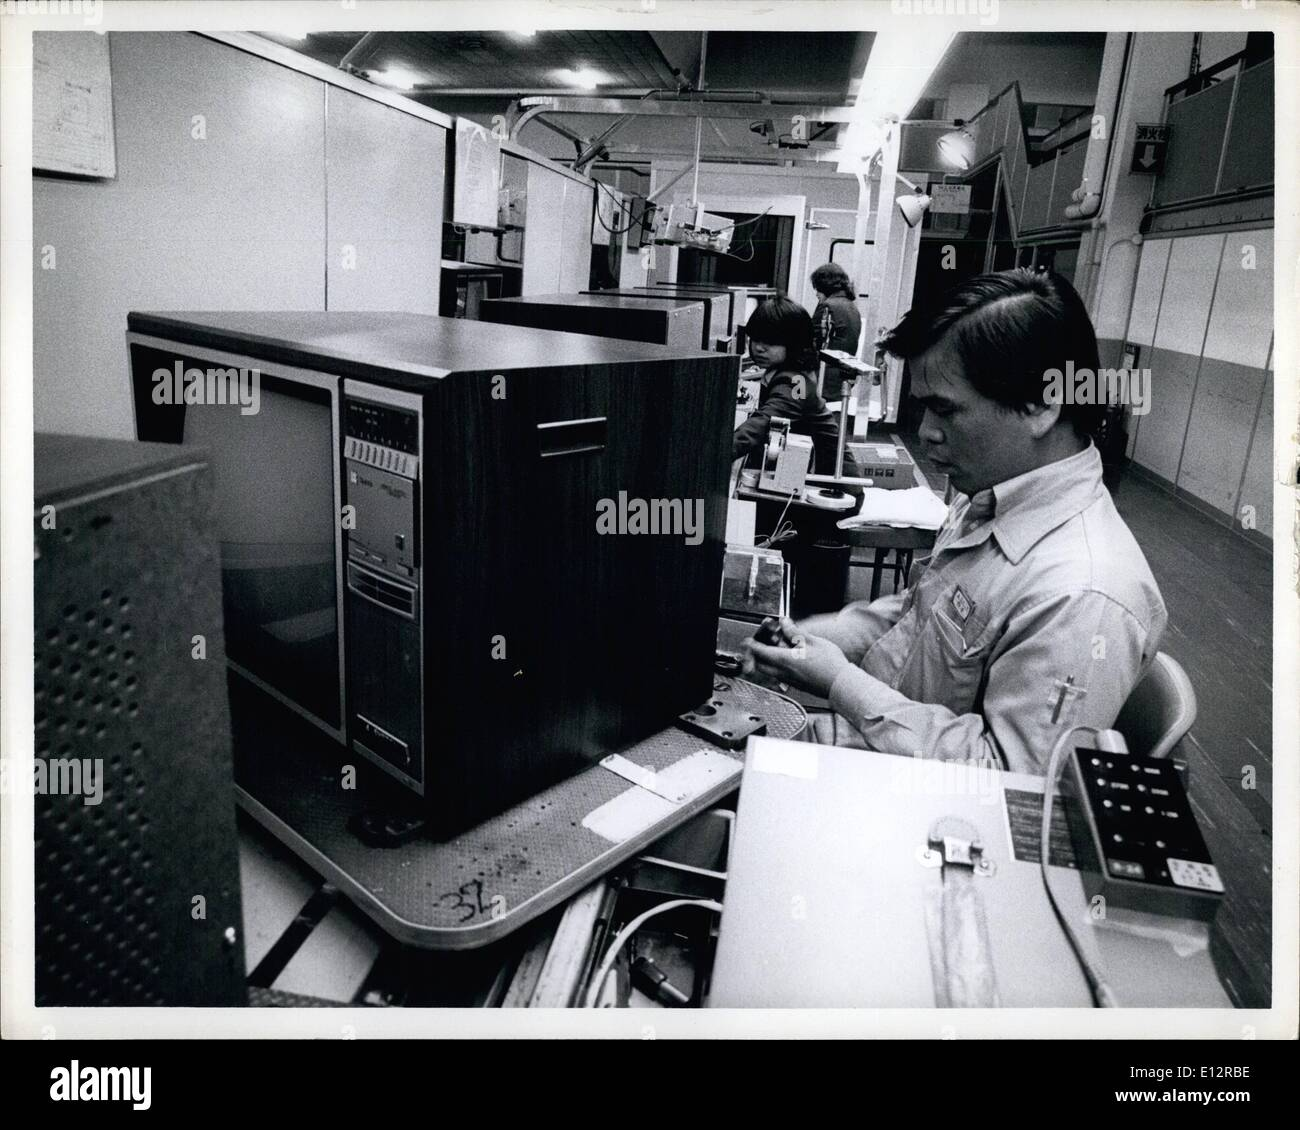 Feb. 24, 2012 - Panasonic Color television production at their Ibiraki plant in Osaka Japan. - Stock Image